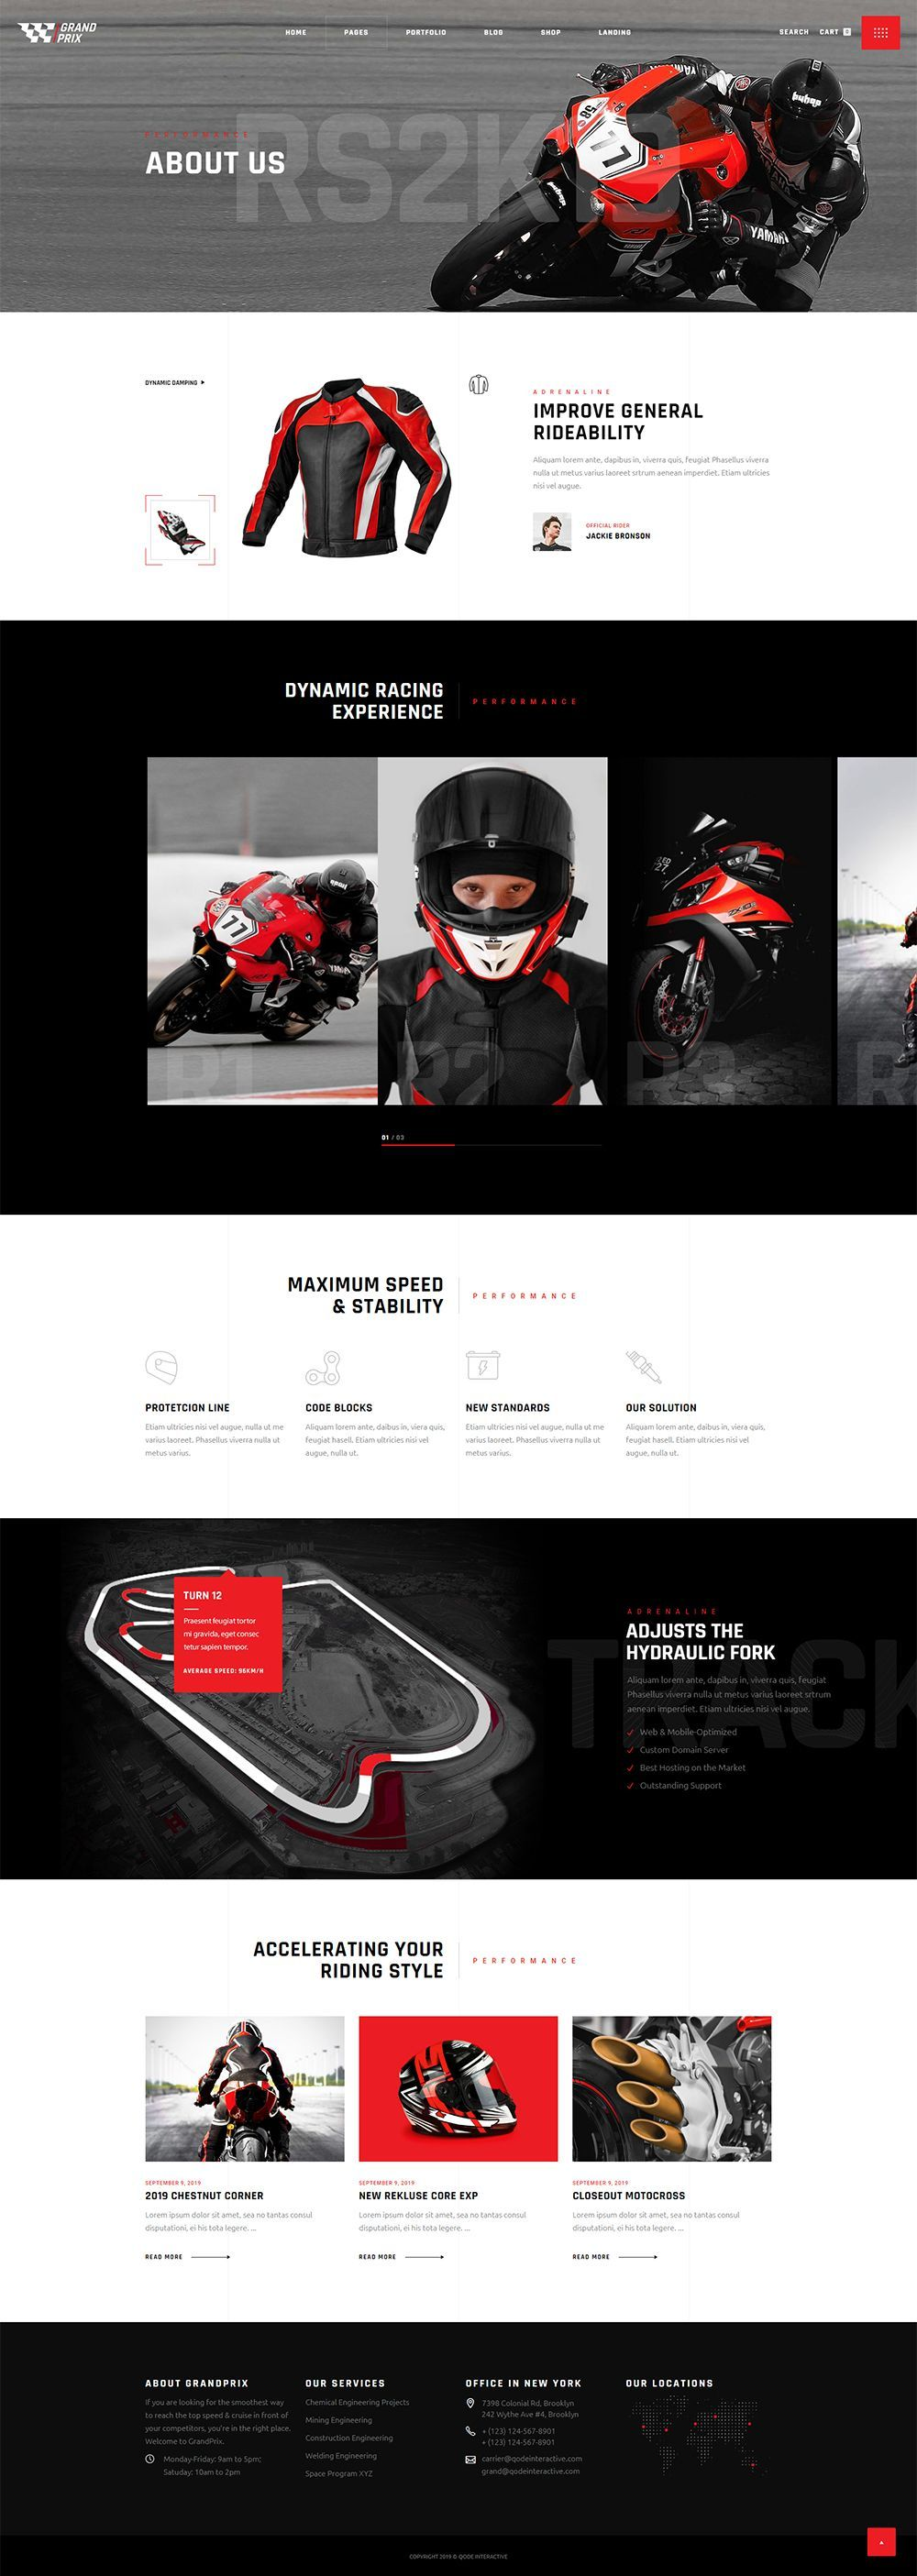 Introduce your biker shop or moto club today, all you need is GrandPrix WordPress theme. #wordpress #theme #design #webdesign #uxdesign #uidesign #responsive #designinspiration #webdesign #wordpresslove #template #layout #websitedesign #branding #websiteideas #webart #webpage #visual